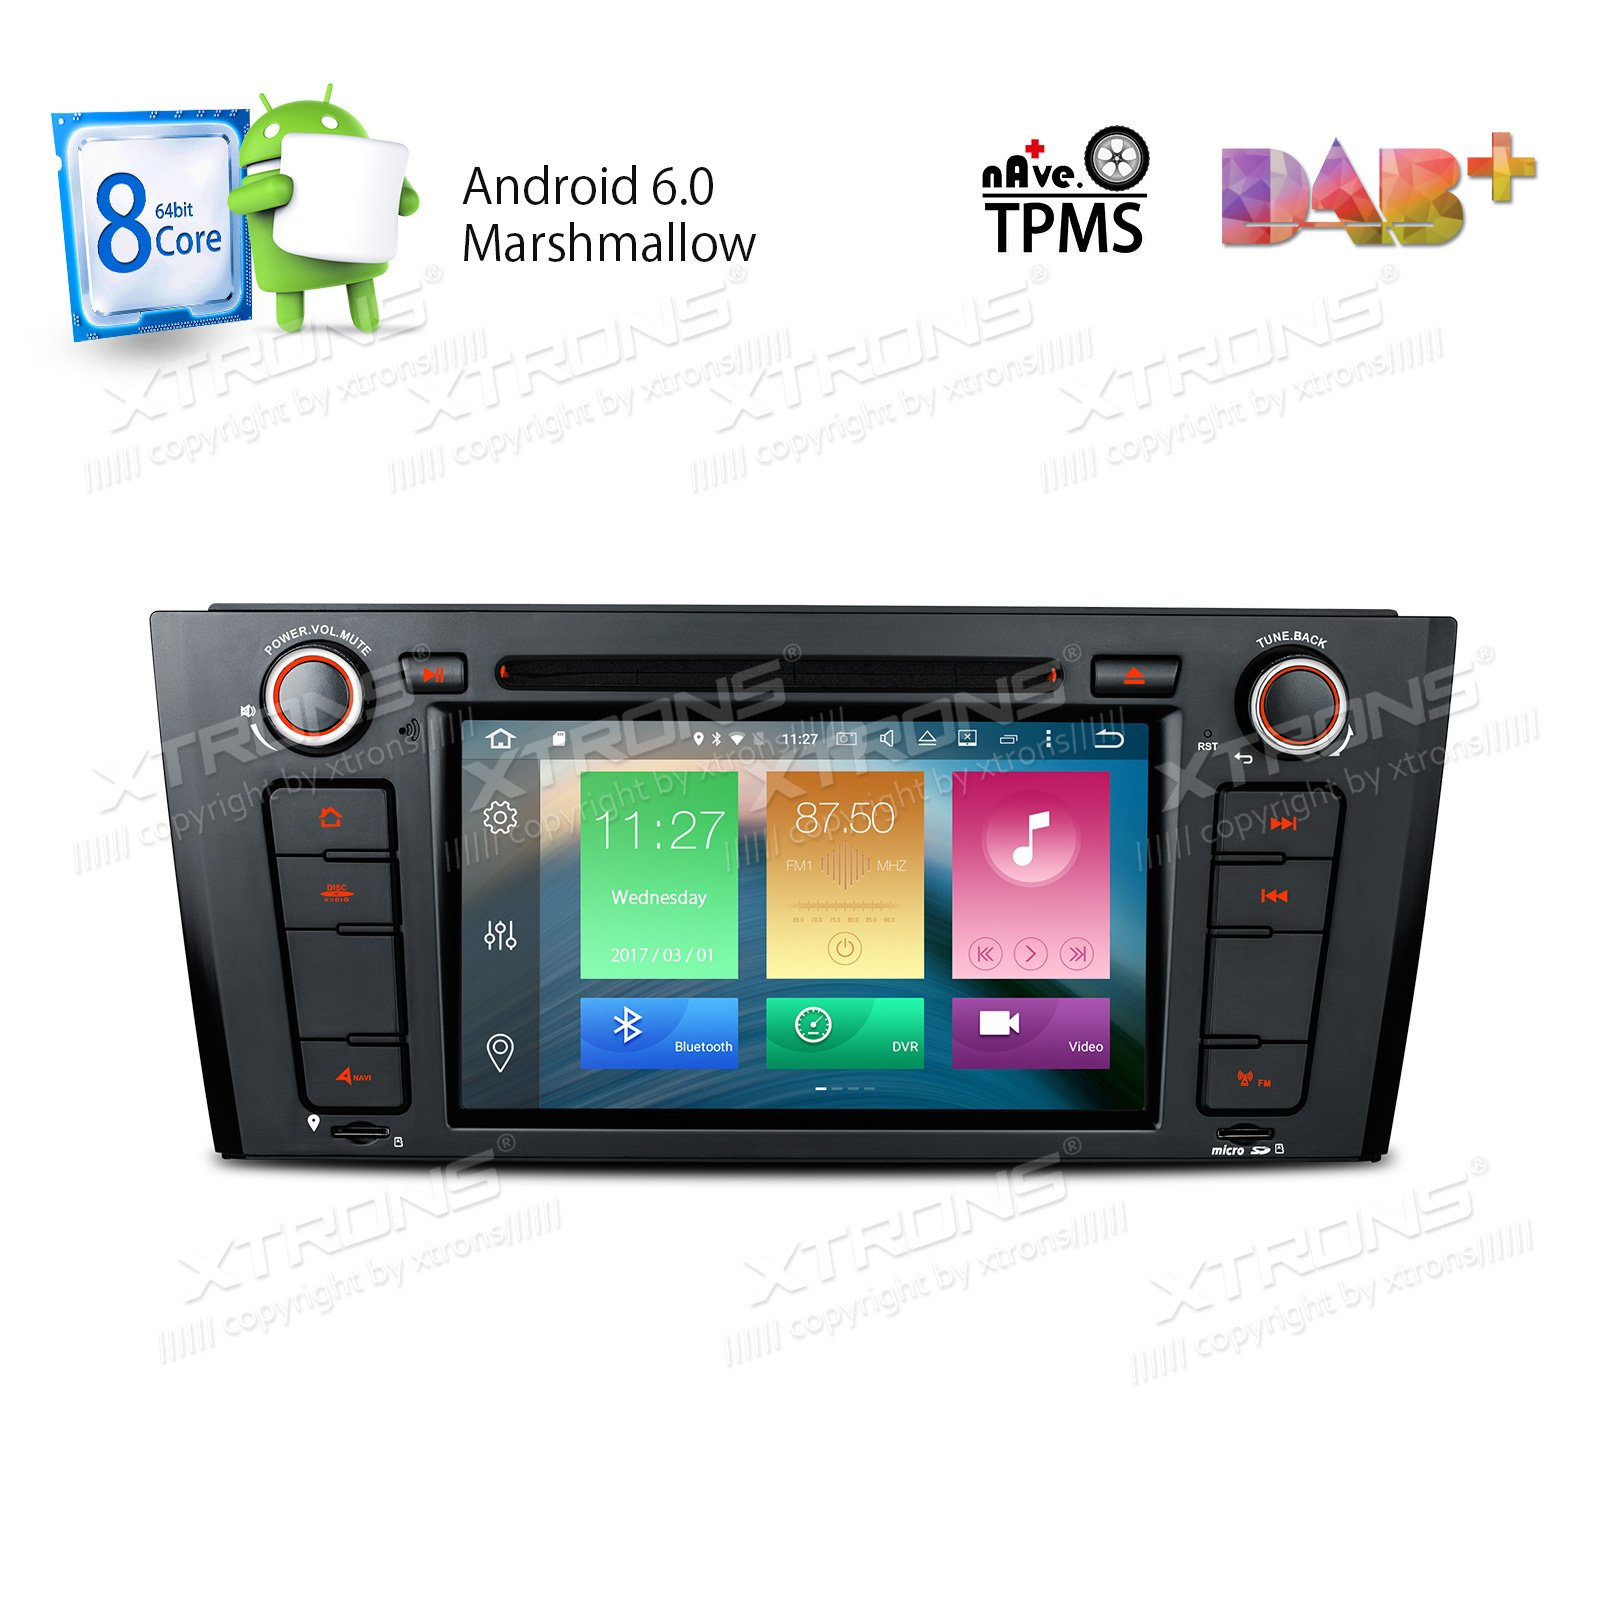 XTRONS Android 6.0 Octa-Core 64Bit 7 Inch Capacitive Touch Screen Car Stereo Radio DVD Player GPS CANbus Screen Mirroring Function OBD2 Tire Pressure Monitoring for BMW 1 Series E81 E82 E88